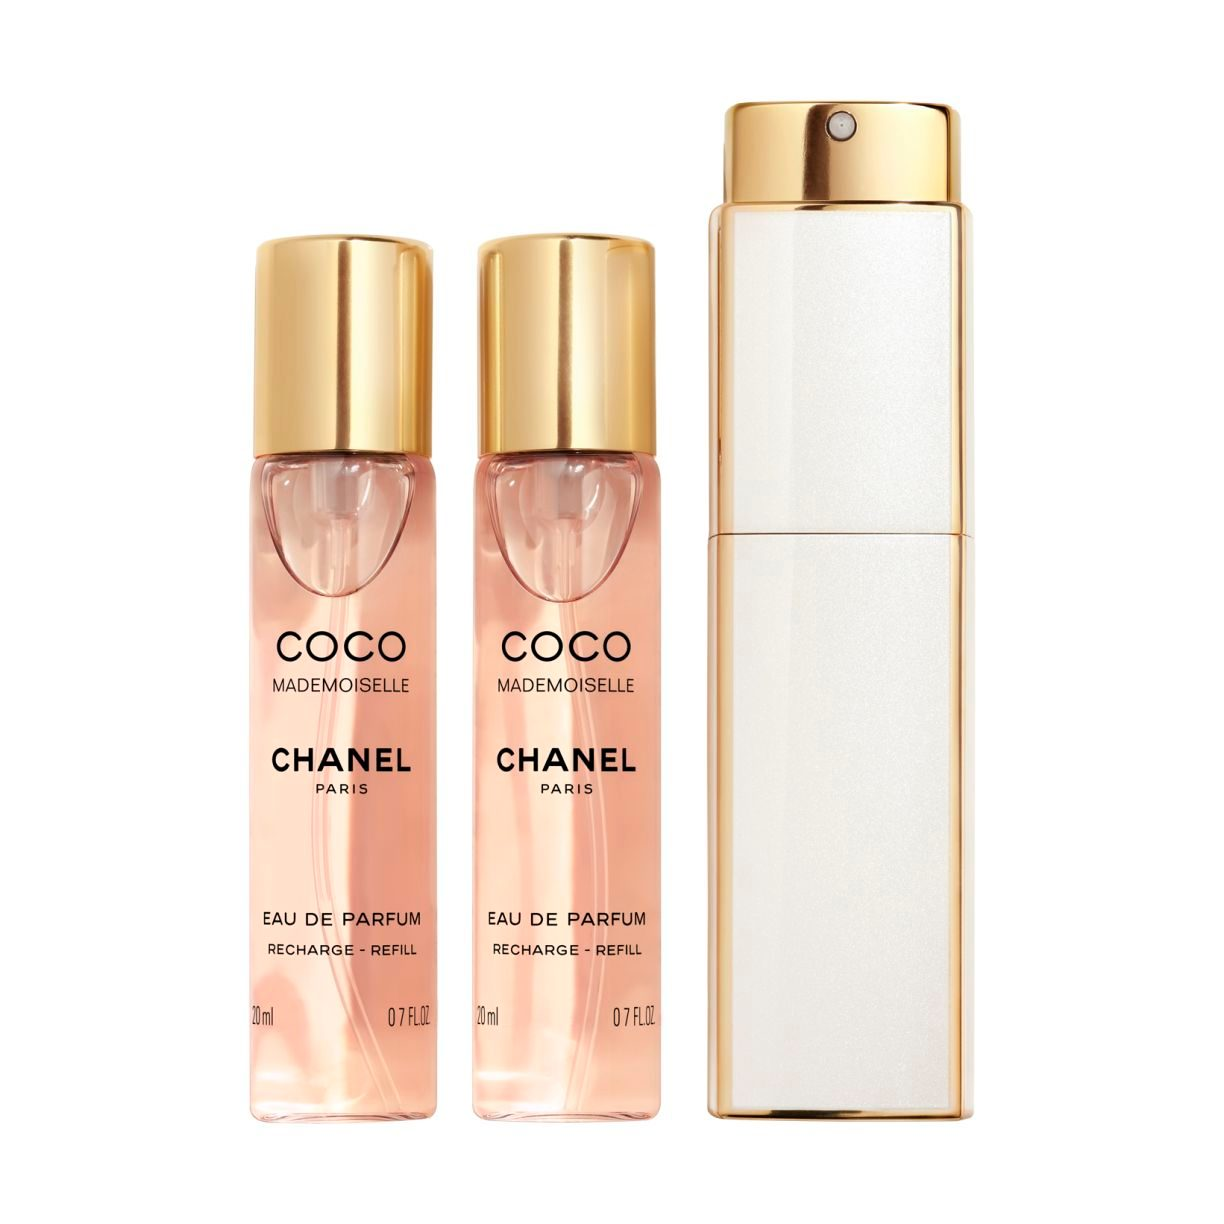 COCO MADEMOISELLE EAU DE PARFUM TWIST AND SPRAY 3x20ml